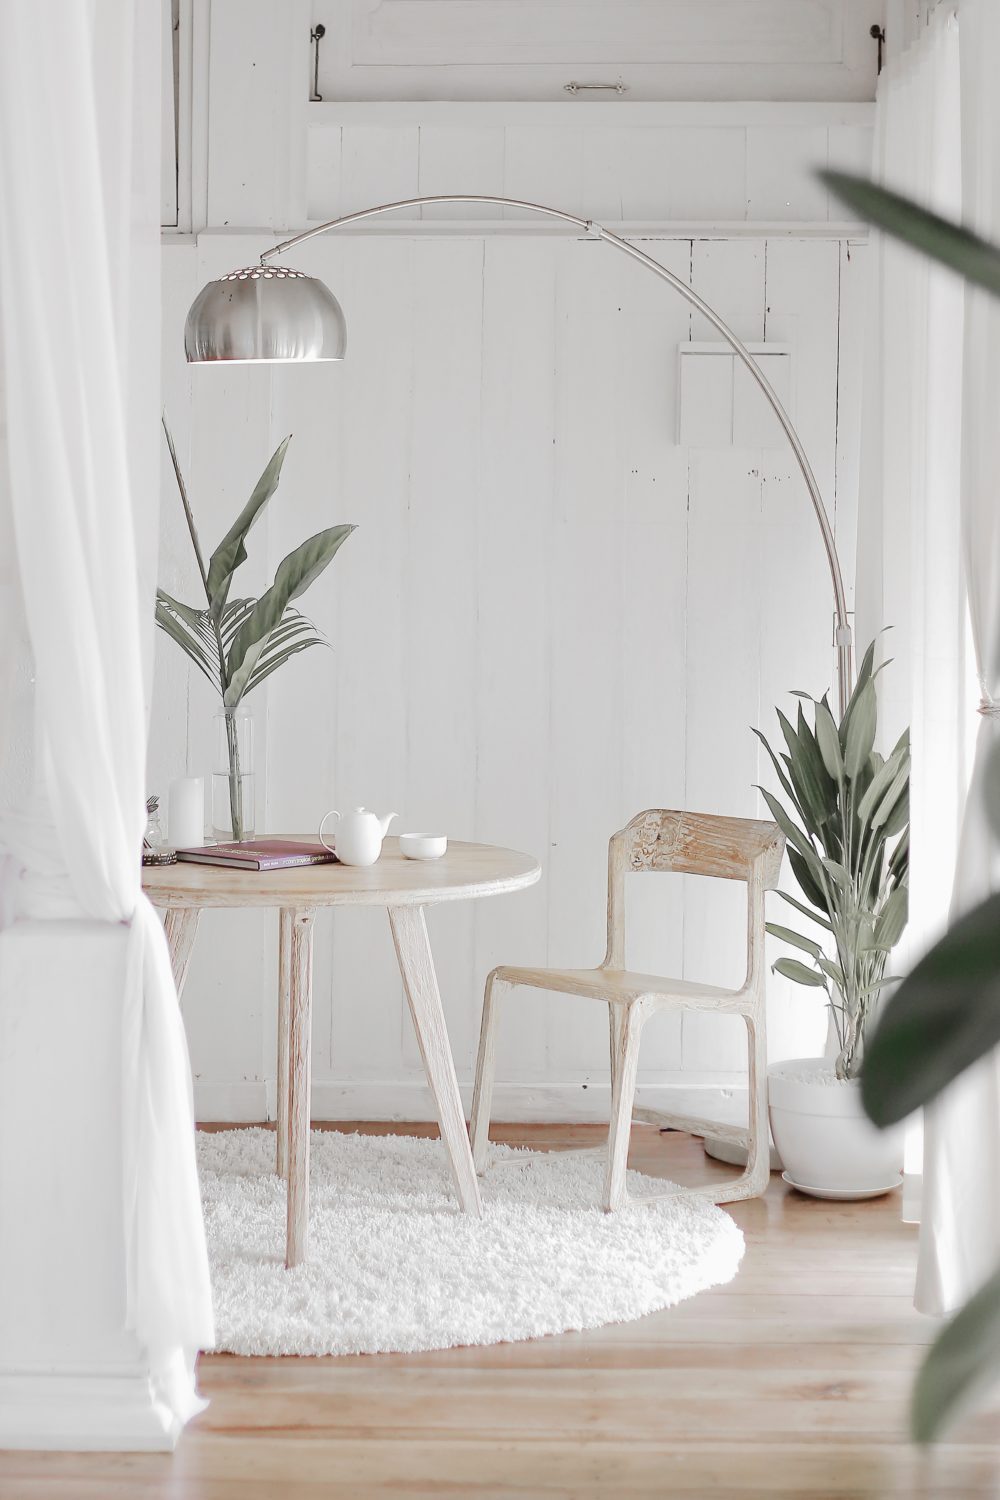 coastal style decor with white walls, bleached wood furniture and beachy greenery